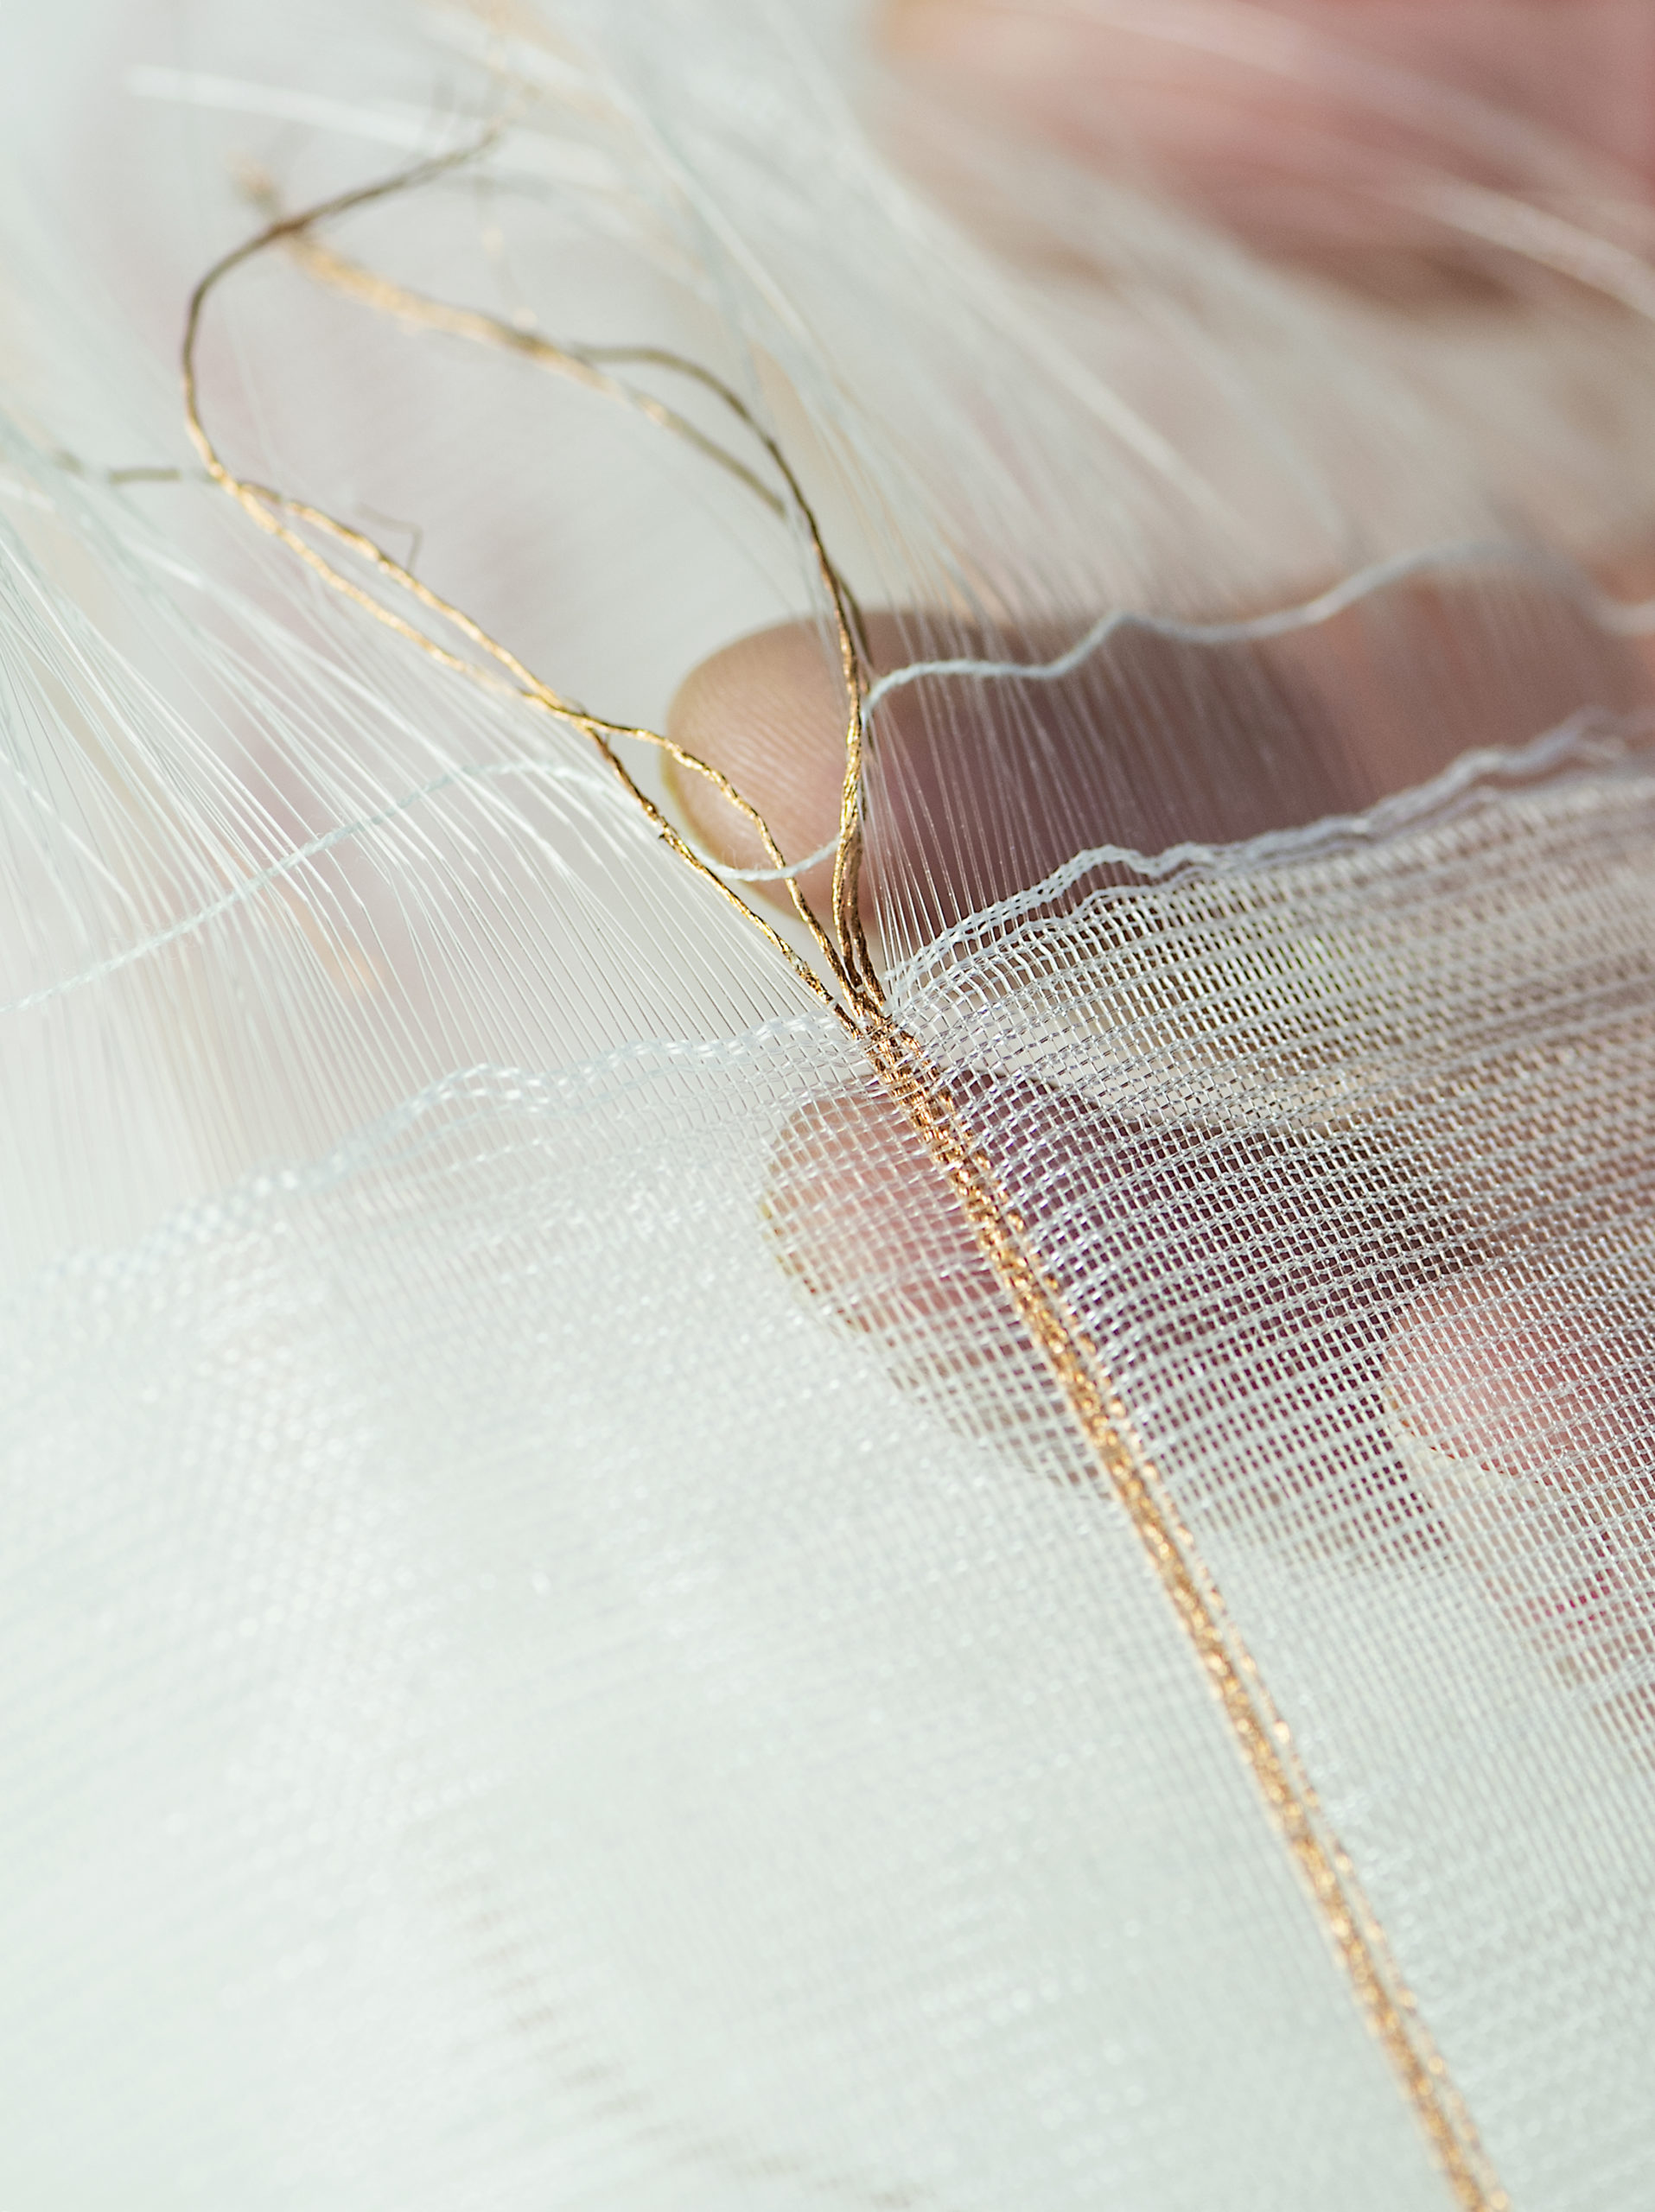 Anna-Sigge_Smart-Textiles-scaled